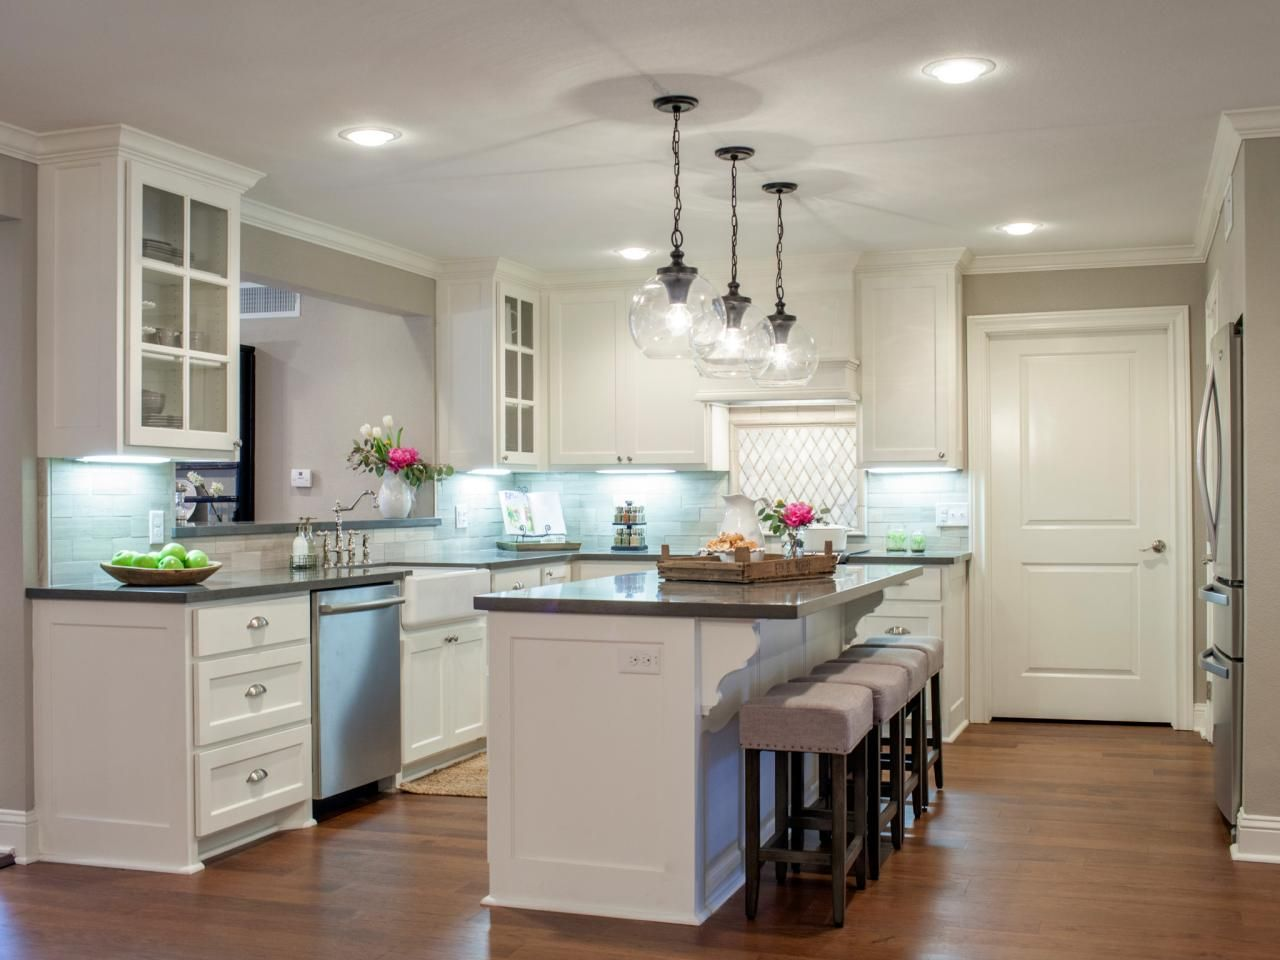 Hgtv fixer upper white kitchens - As Seen On Hgtv S Fixer Upper